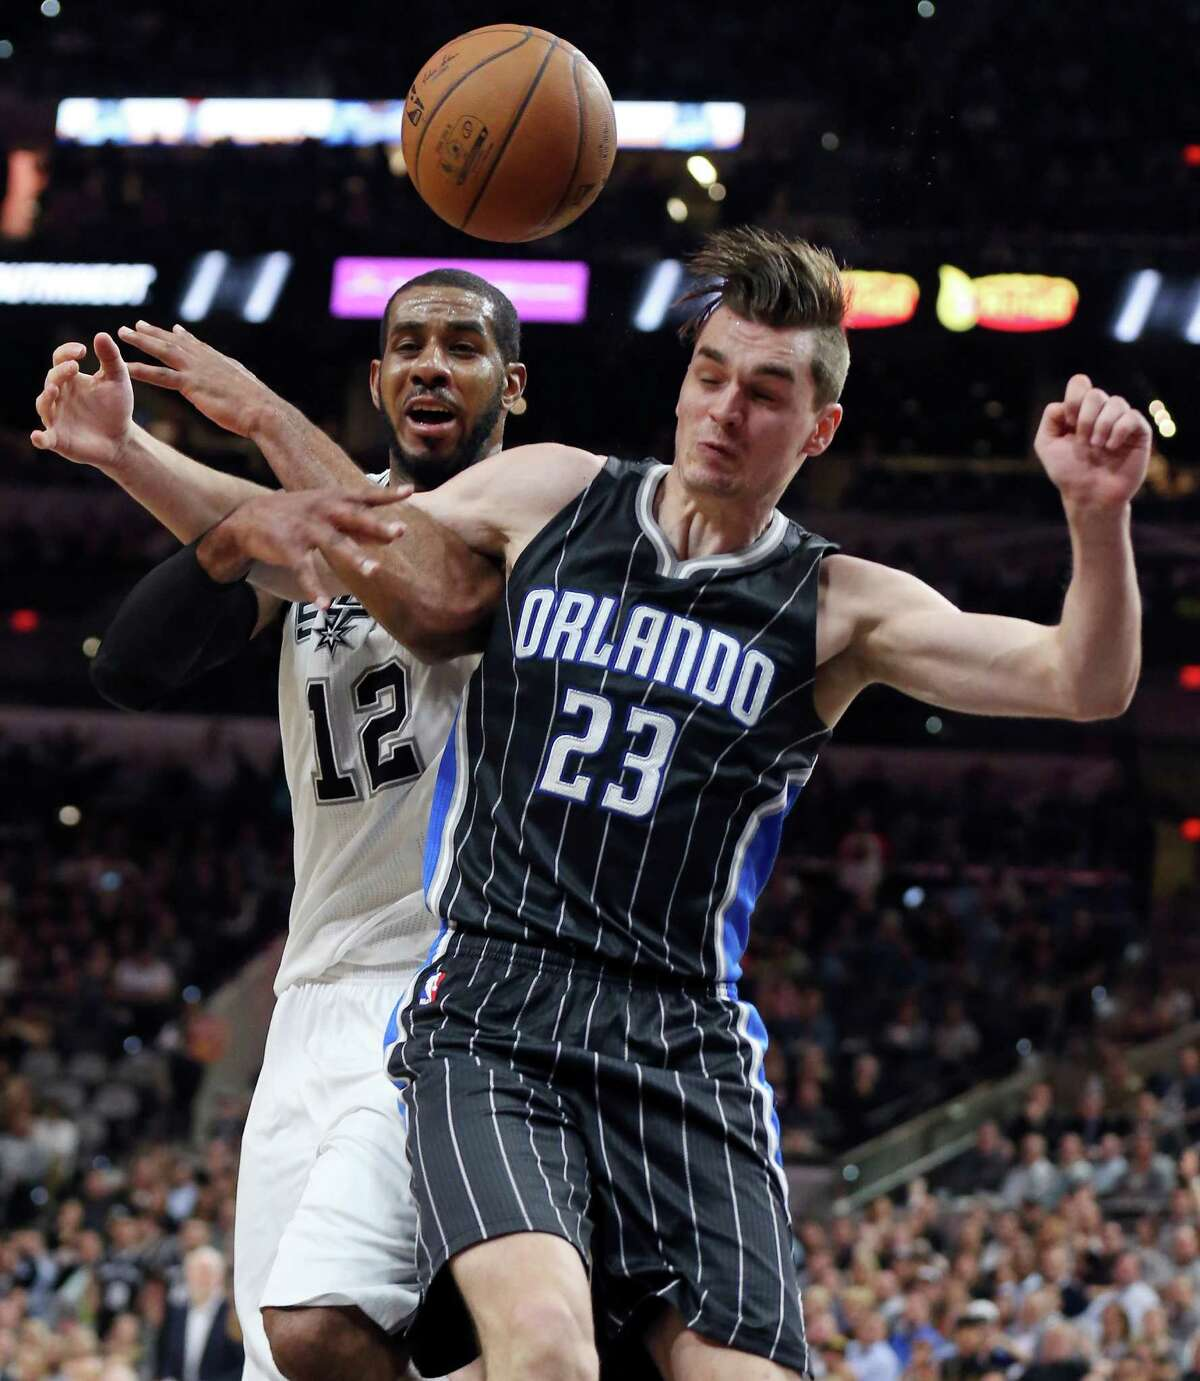 San Antonio Spurs' LaMarcus Aldridge is fouled by Orlando Magic's Mario Hezonja during second half action Monday Feb. 1, 2016 at the AT&T Center. The Spurs won 107-92.